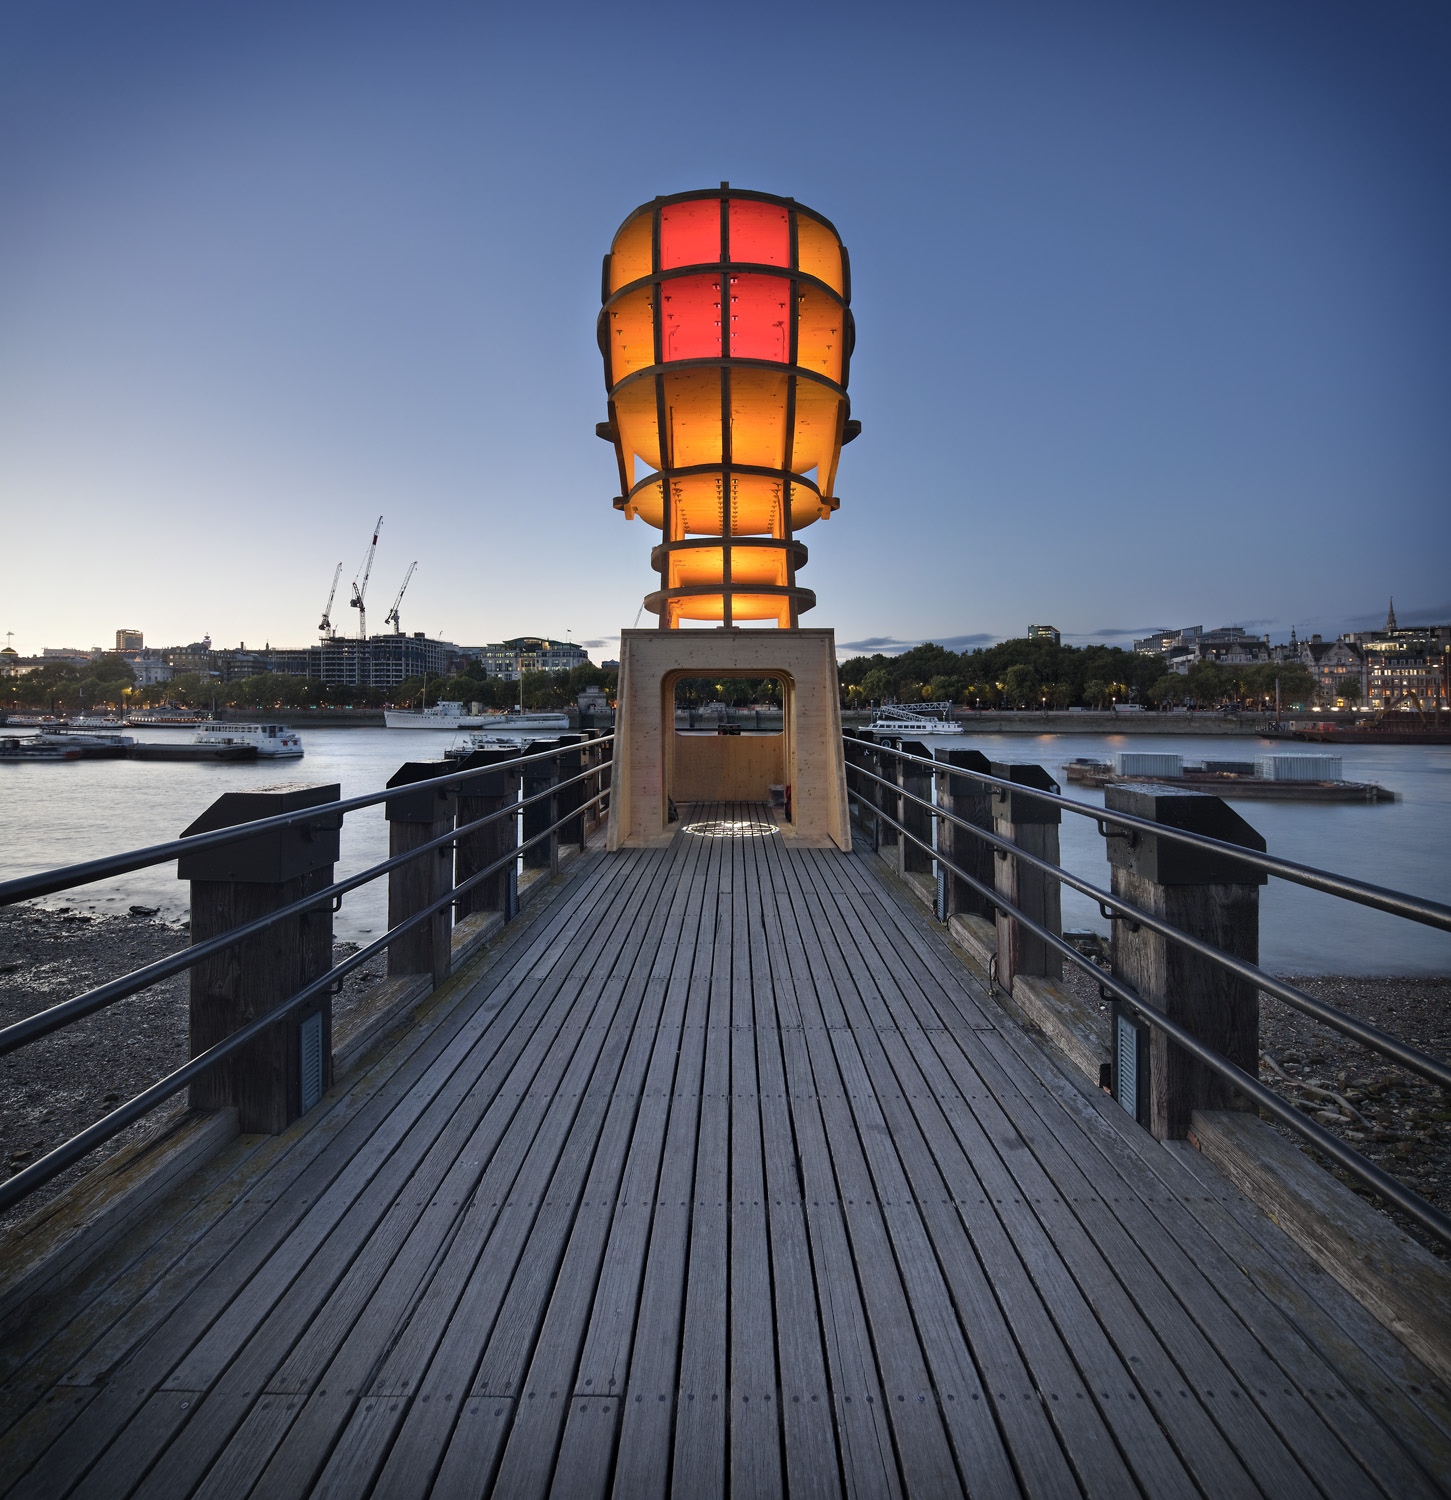 """Light sculpture, """"Head Above Water"""" by Steuart Padwick on the Oxo Tower pier, South Bank, London. Interactive lighting installation by Hoare Lea Lighting. The sculpture supports Time to Change's campaign to remove the stigma of mental illness."""